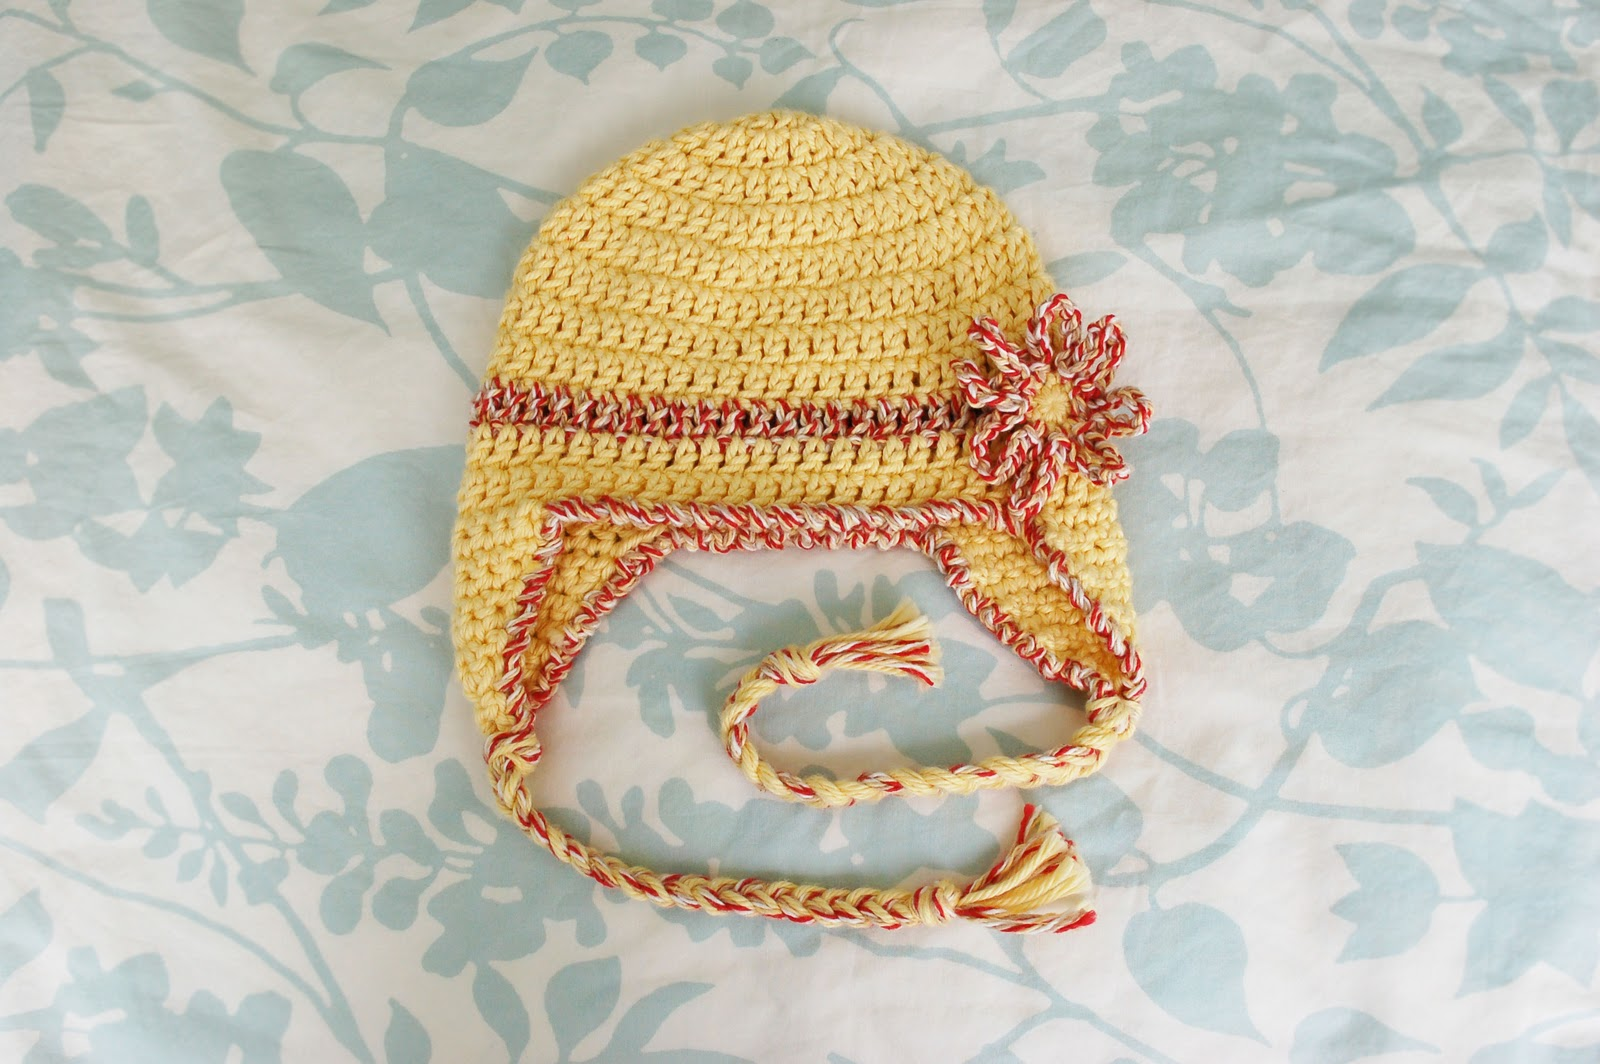 Newborn Crochet Hat Pattern With Ear Flaps : Alli Crafts: Free Pattern: Baby Earflap Hat - 6 months